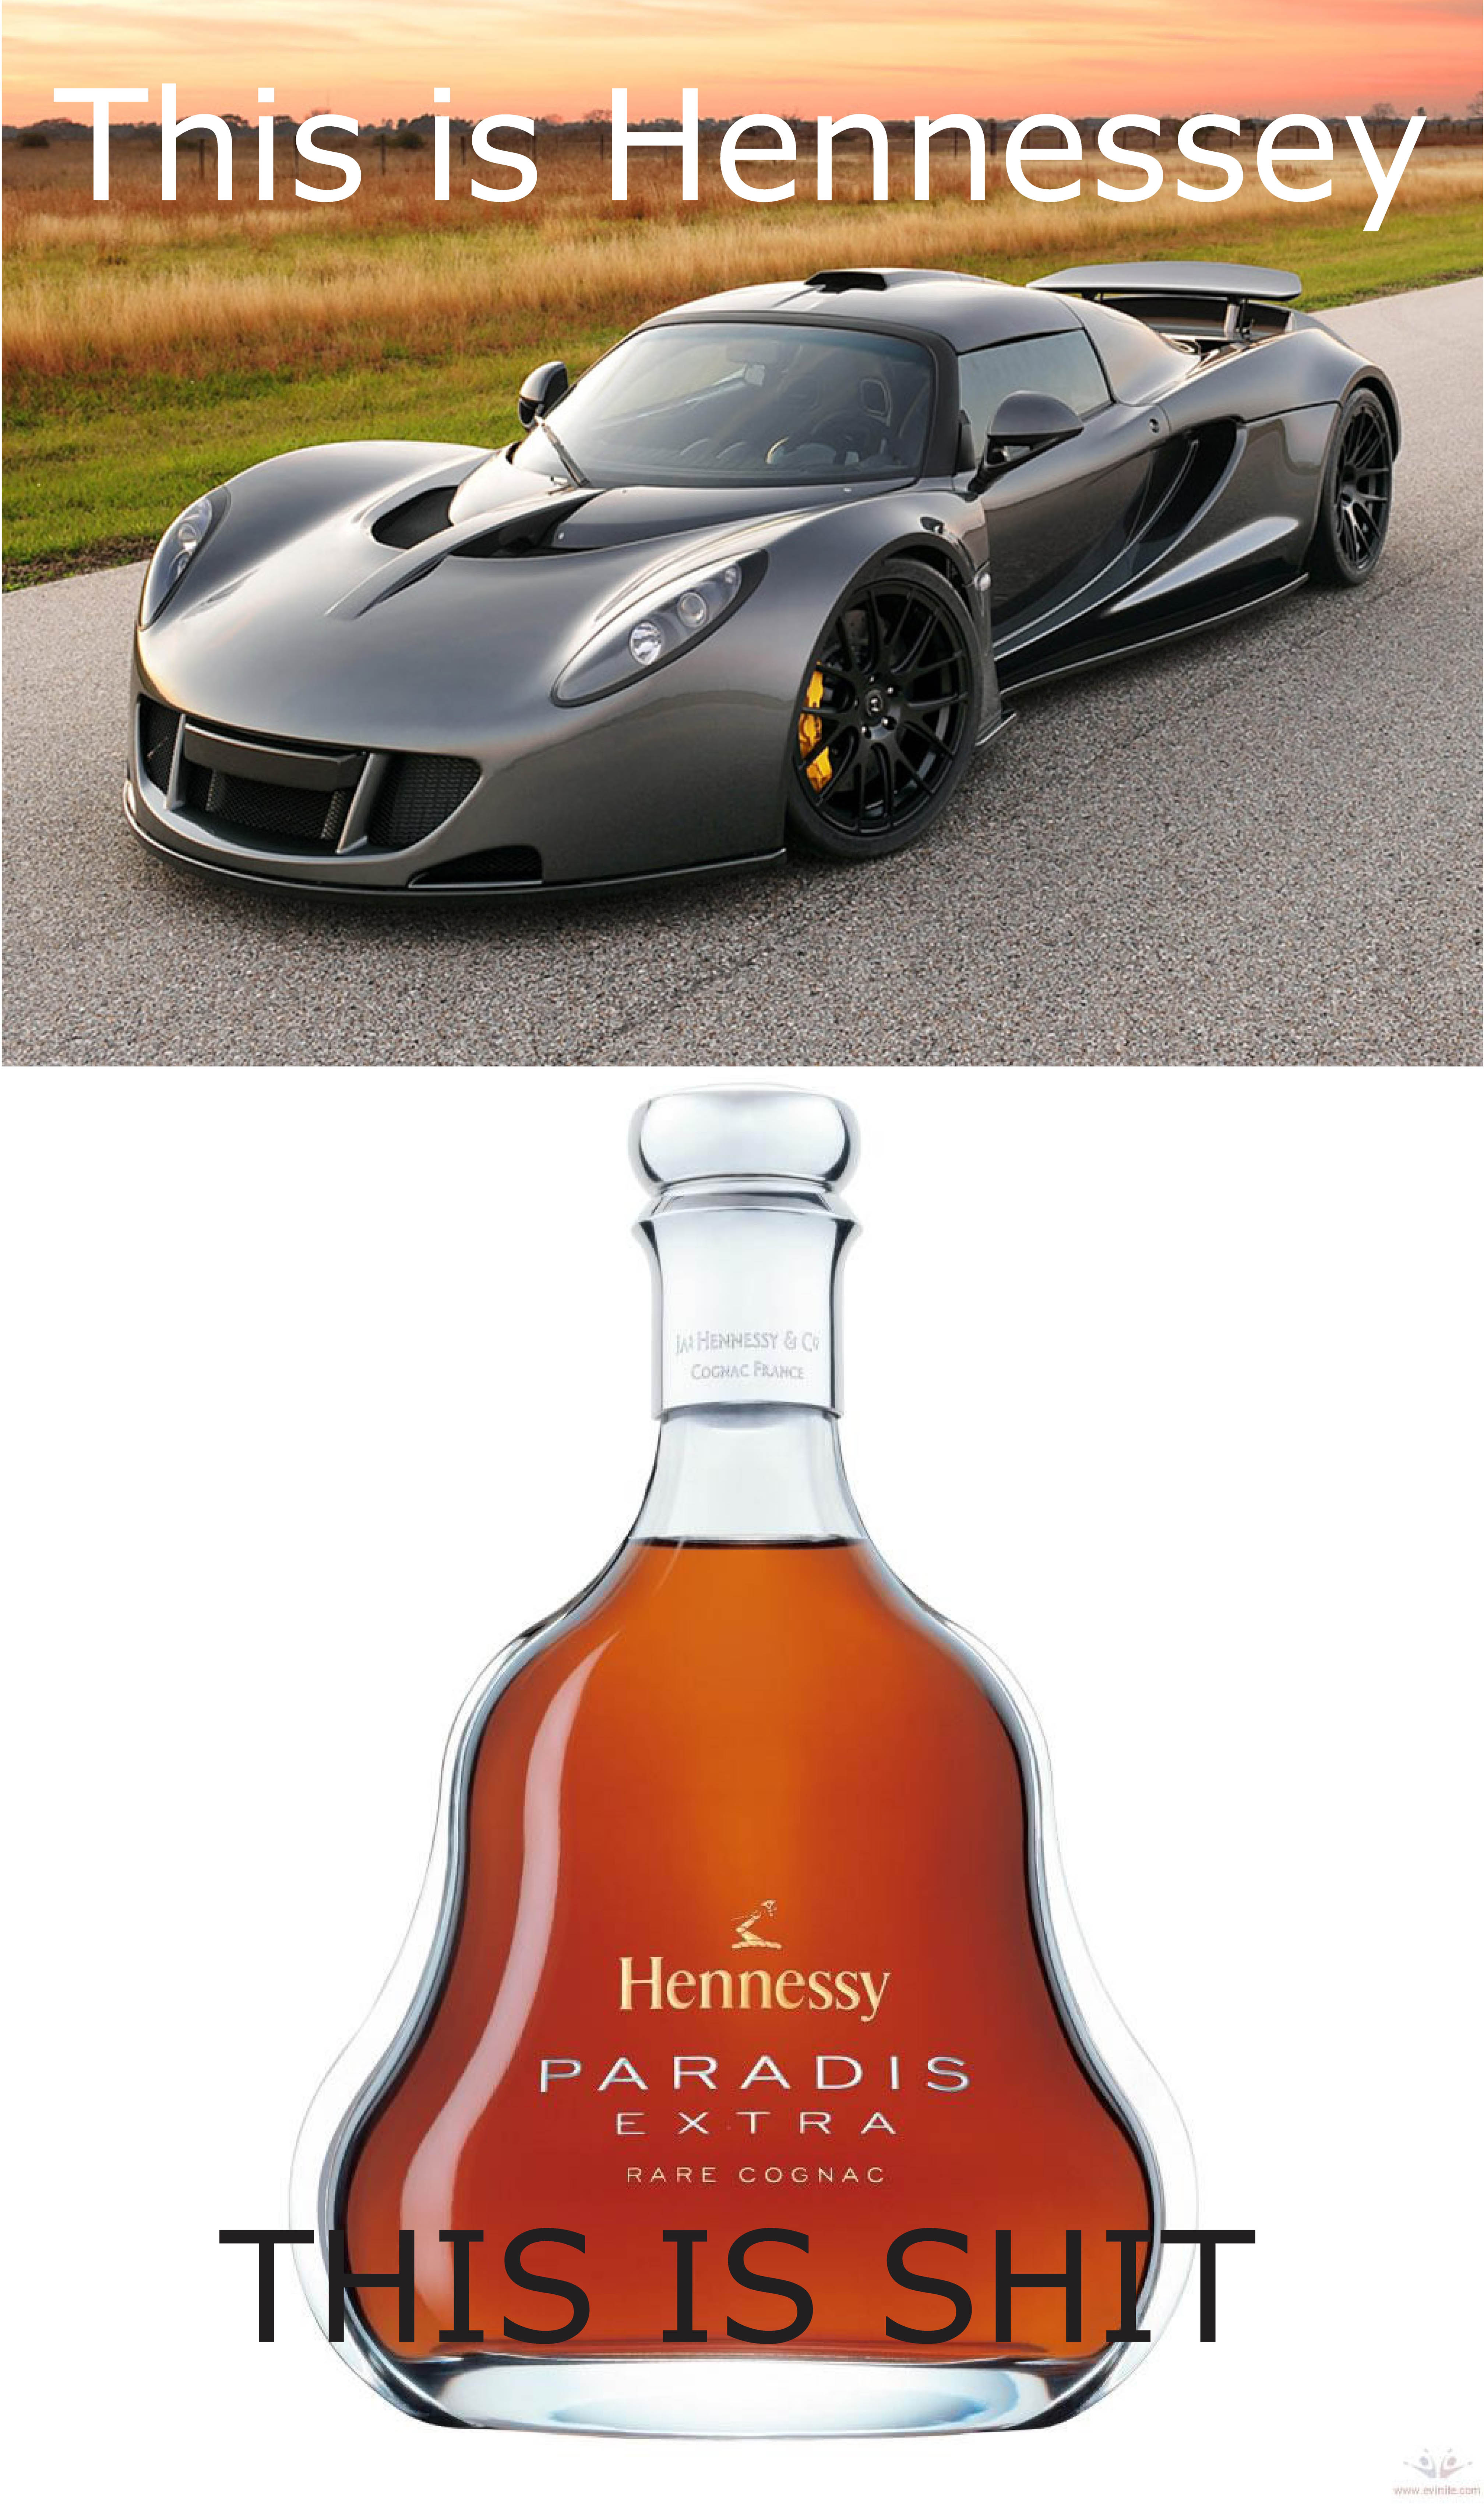 this is hennessey this is shit 54e06d95b259b car guy hennessey vs normal peoples hennessy